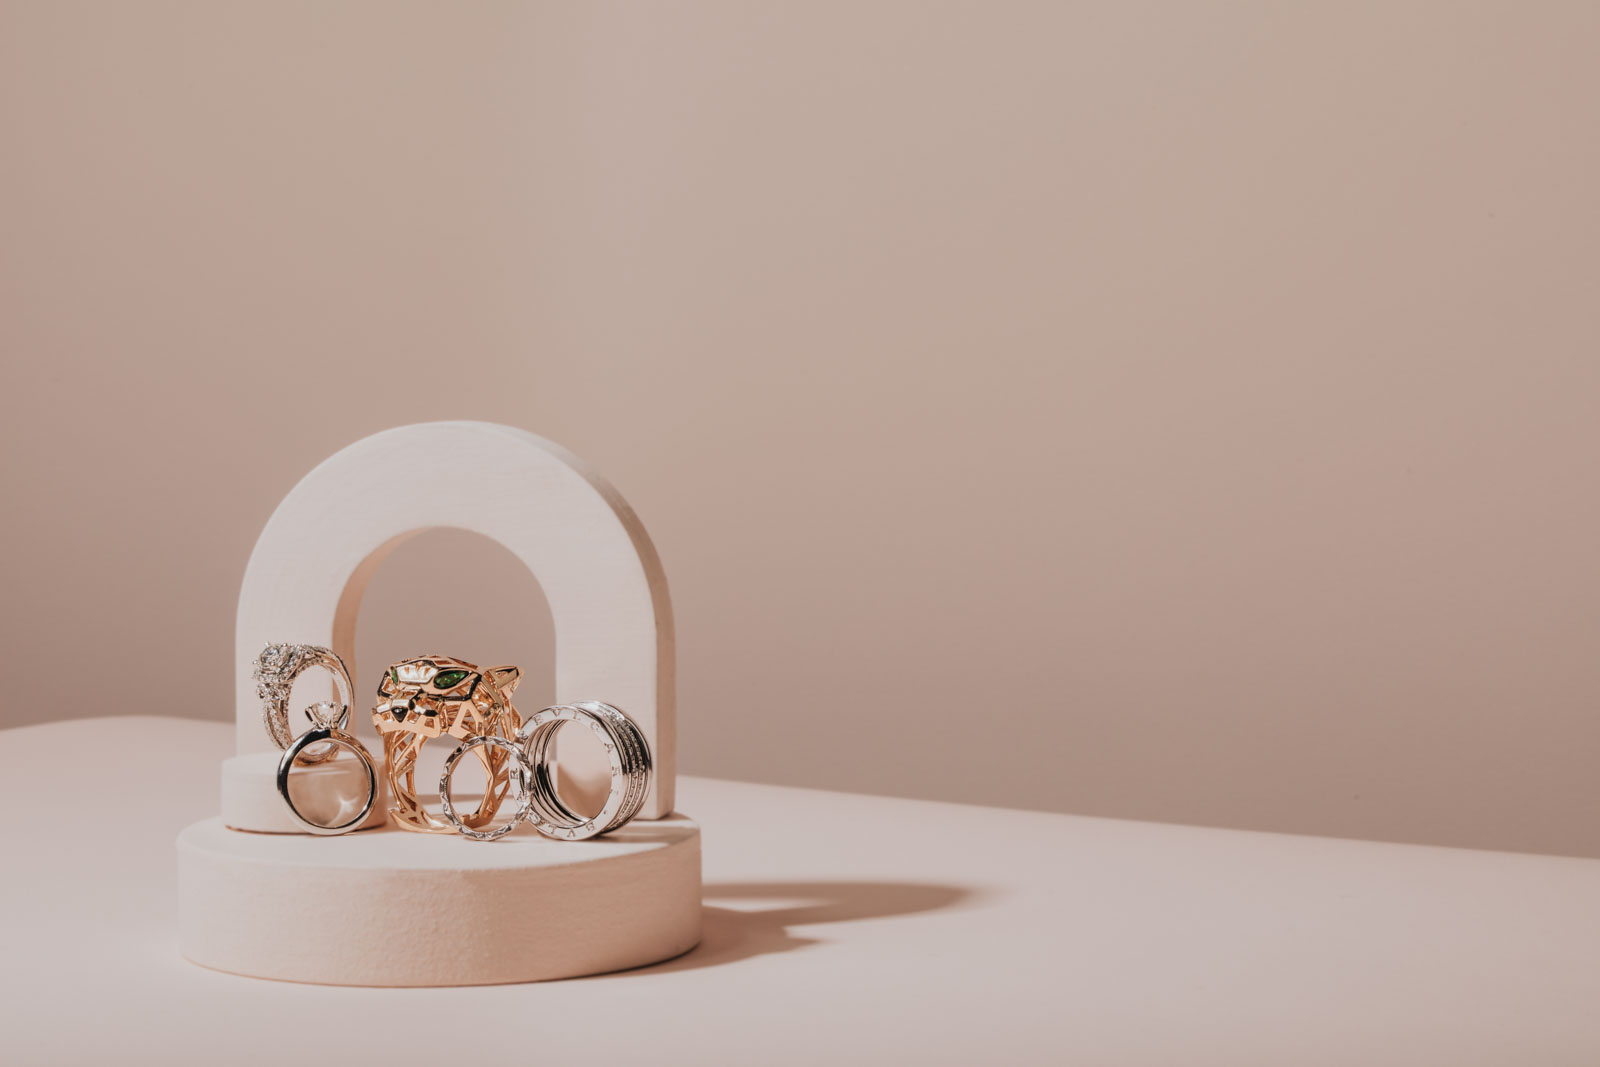 Fun and creative product photography for jewelry. Cartier gold panther ring with emerald eyes and bvlgari diamond wedding band. Diamond engagement ring by Tiffanys. Light pink and blush setup for commercial e-comm photoshoot